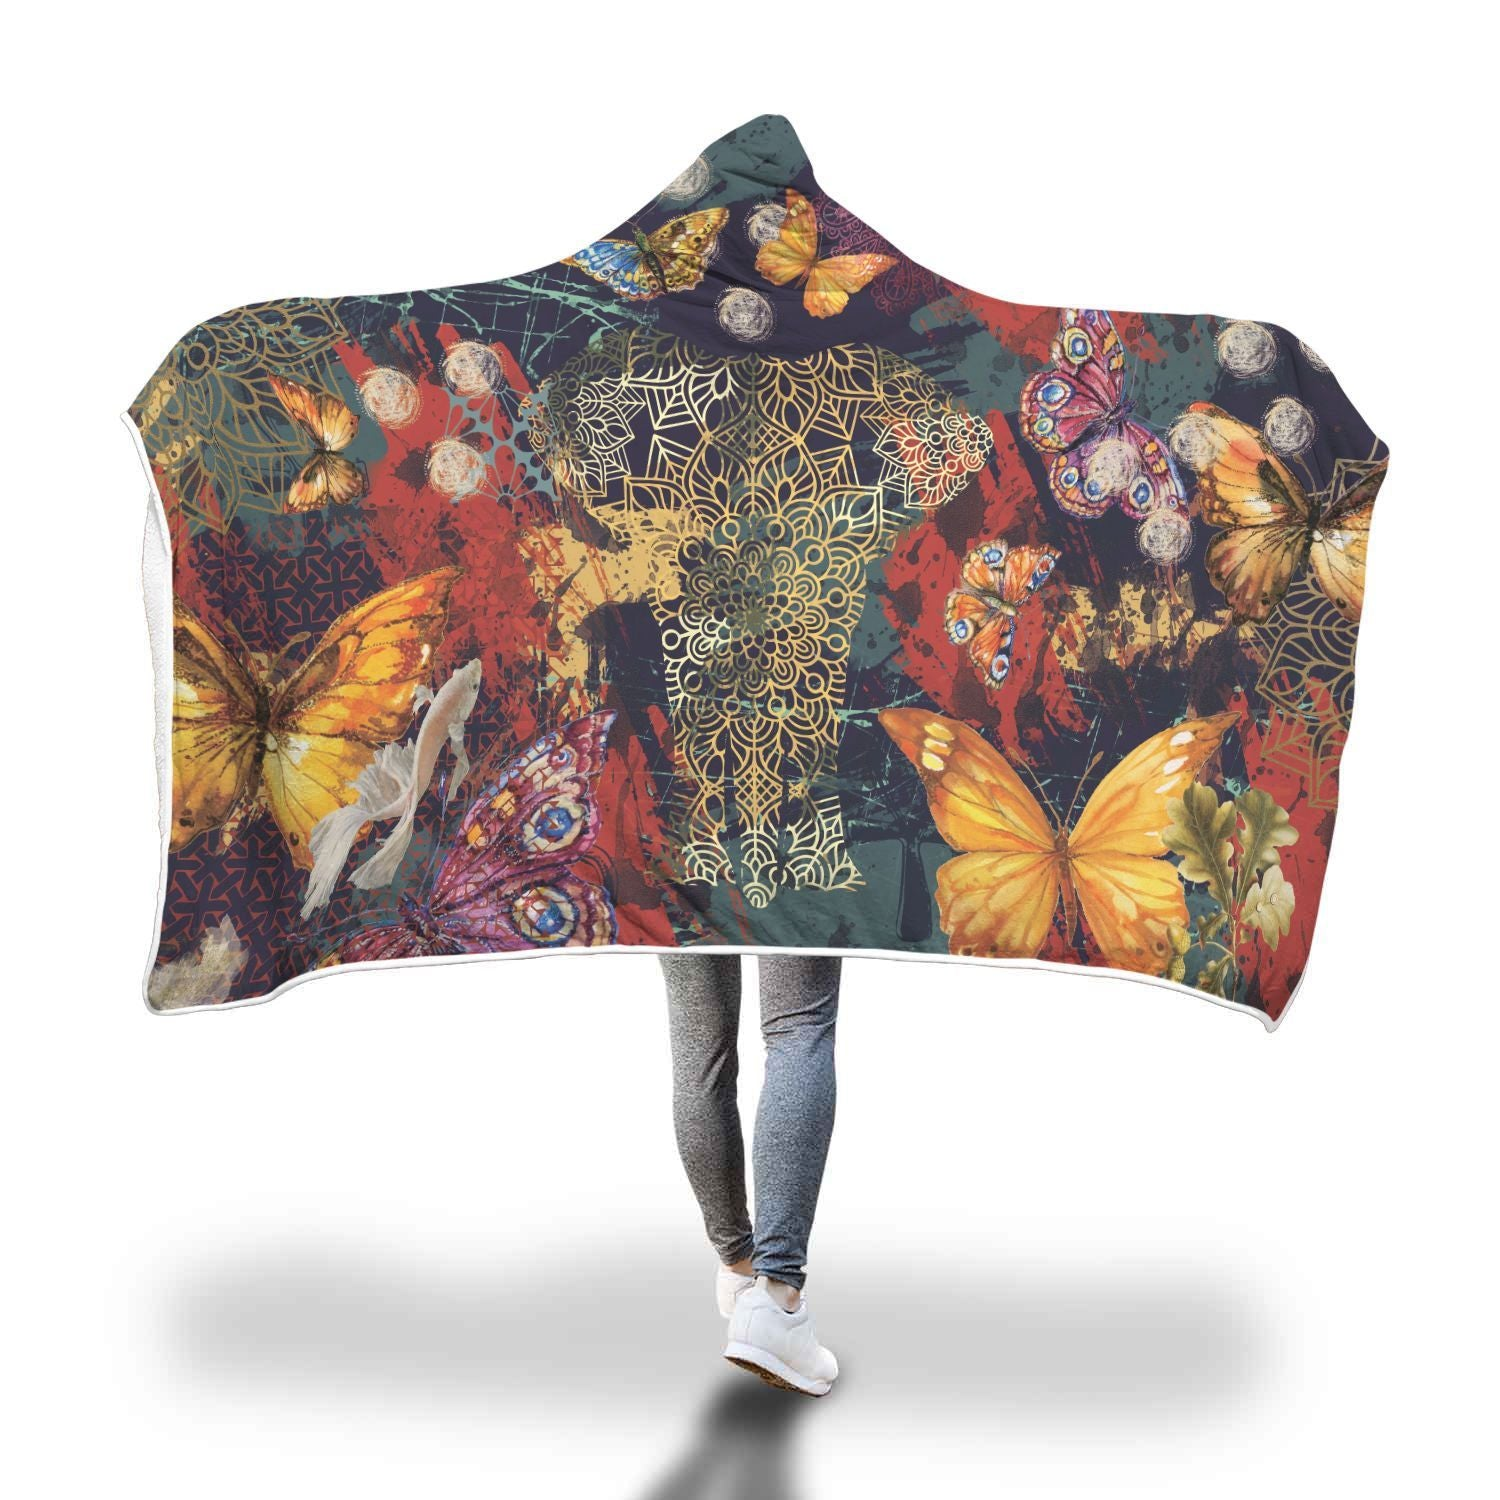 Elephant Spirit And Butterflies Hooded Blanket - Get Set Style Metro